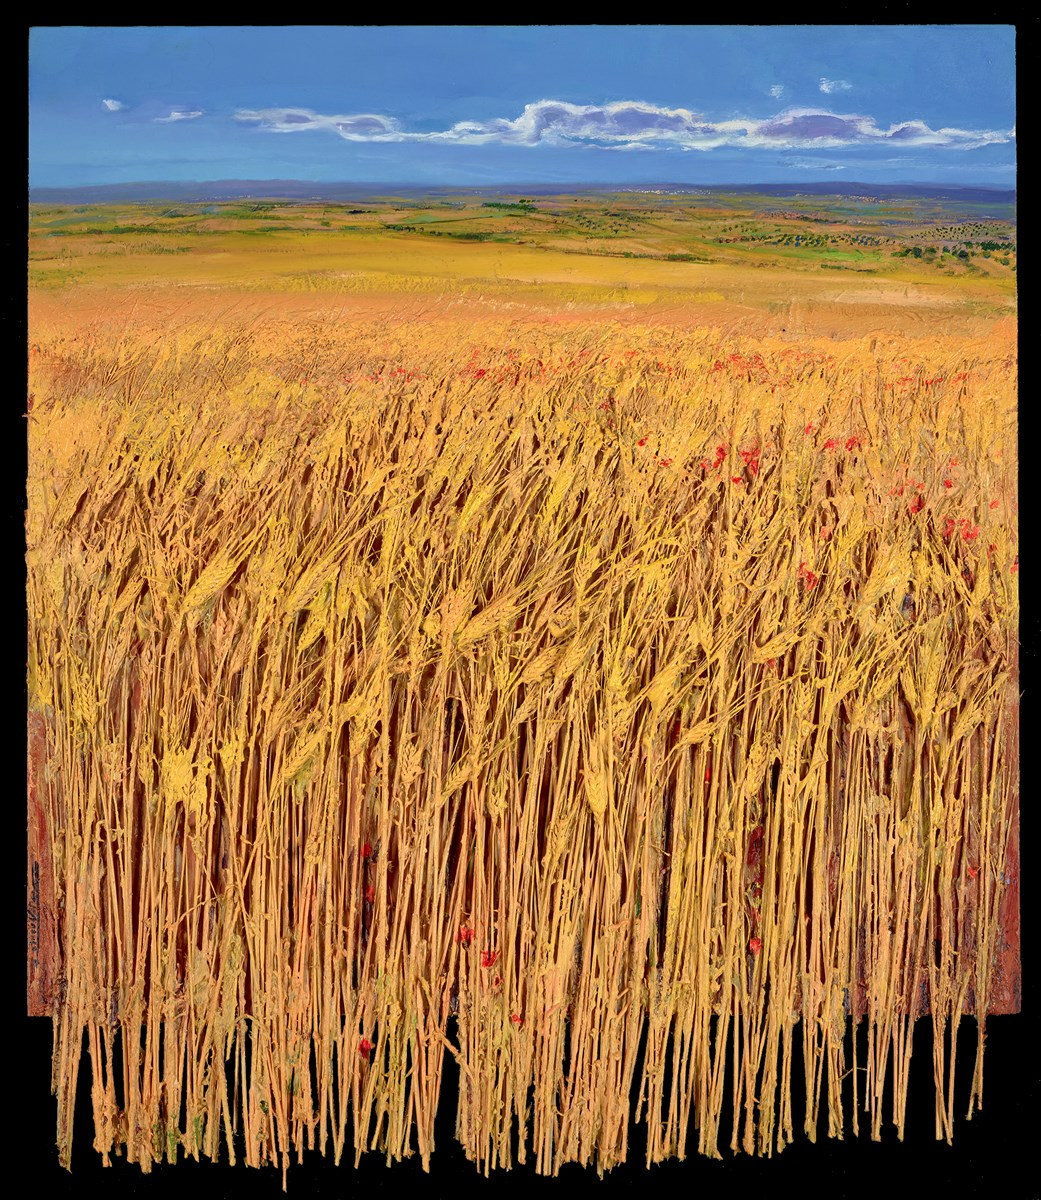 Campo de Trigo by ramon vila -  sized 36x37 inches. Available from Whitewall Galleries